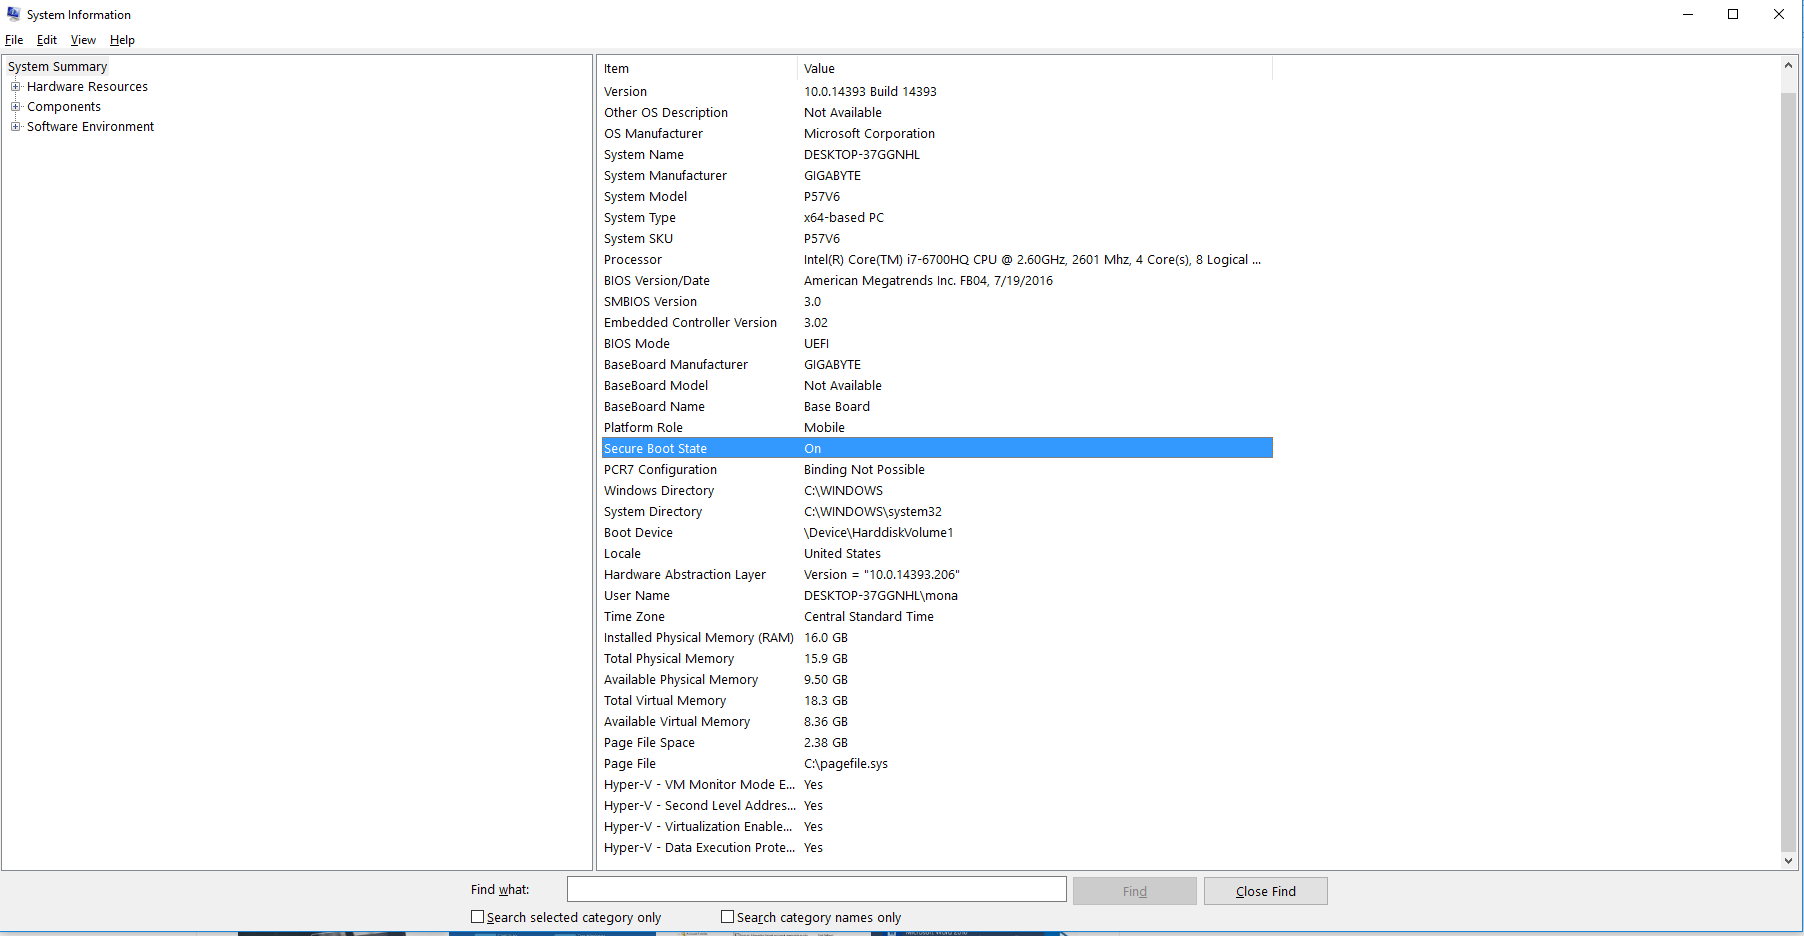 secure boot can't be selected in BIOS in Windows 10 home